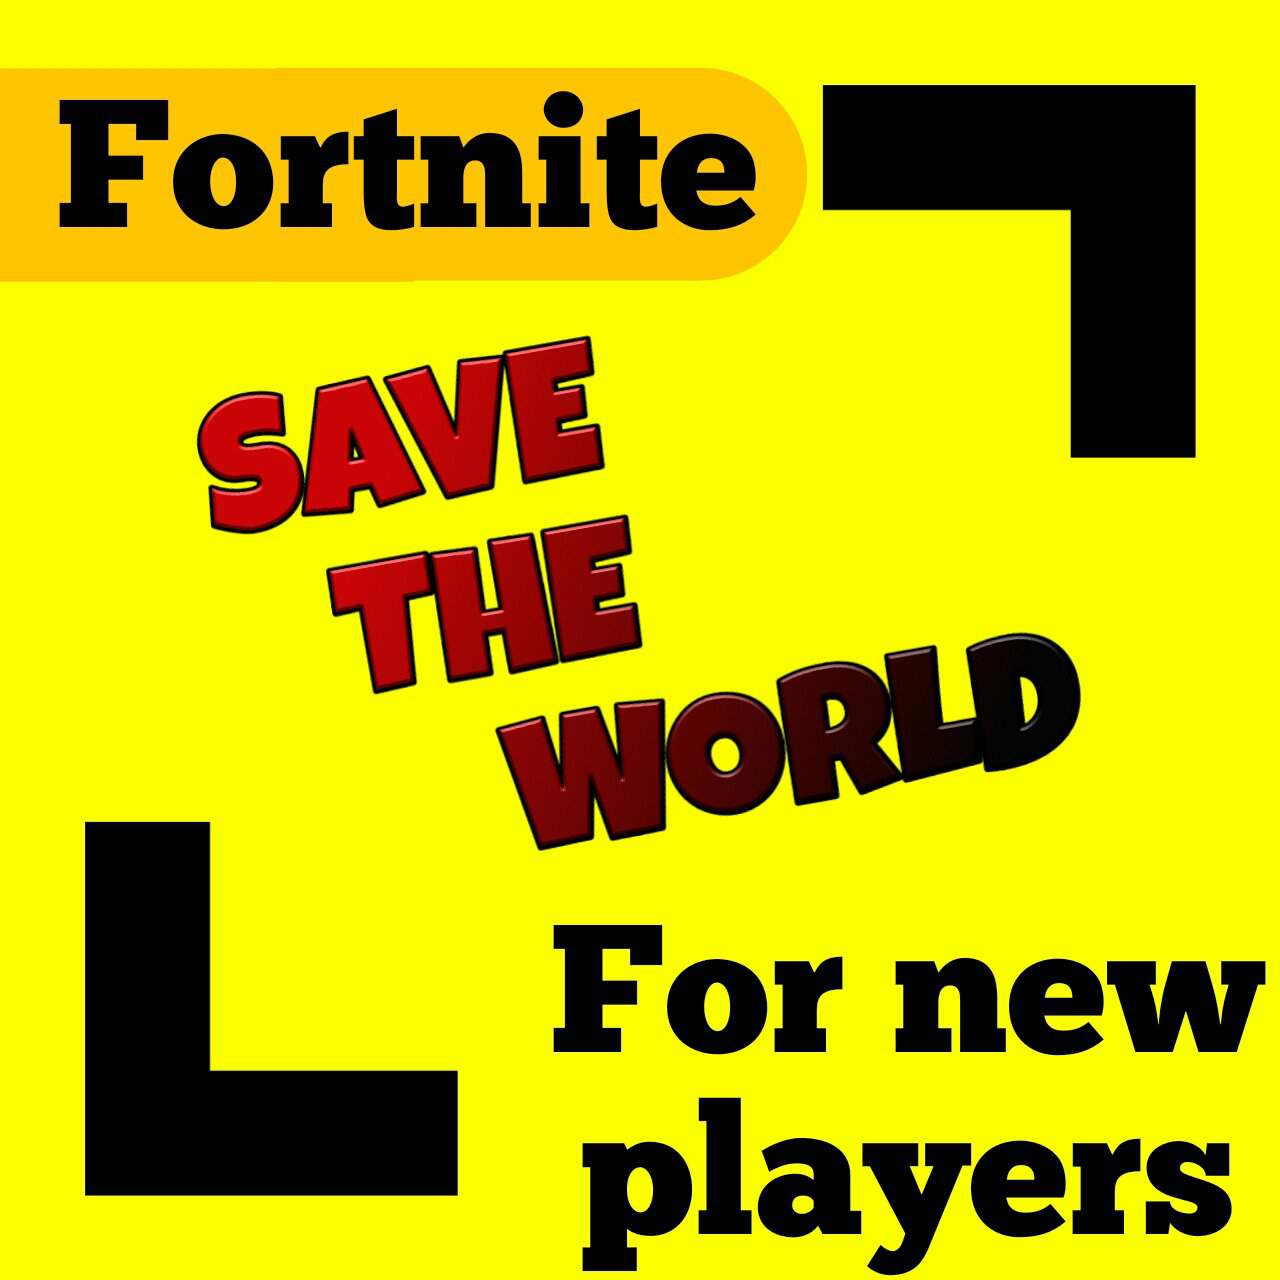 Fortnite Penalty From Leaving Mission In Progress Fortnite Stw Updated Guides Mission Types Fortnite Battle Royale Armory Amino